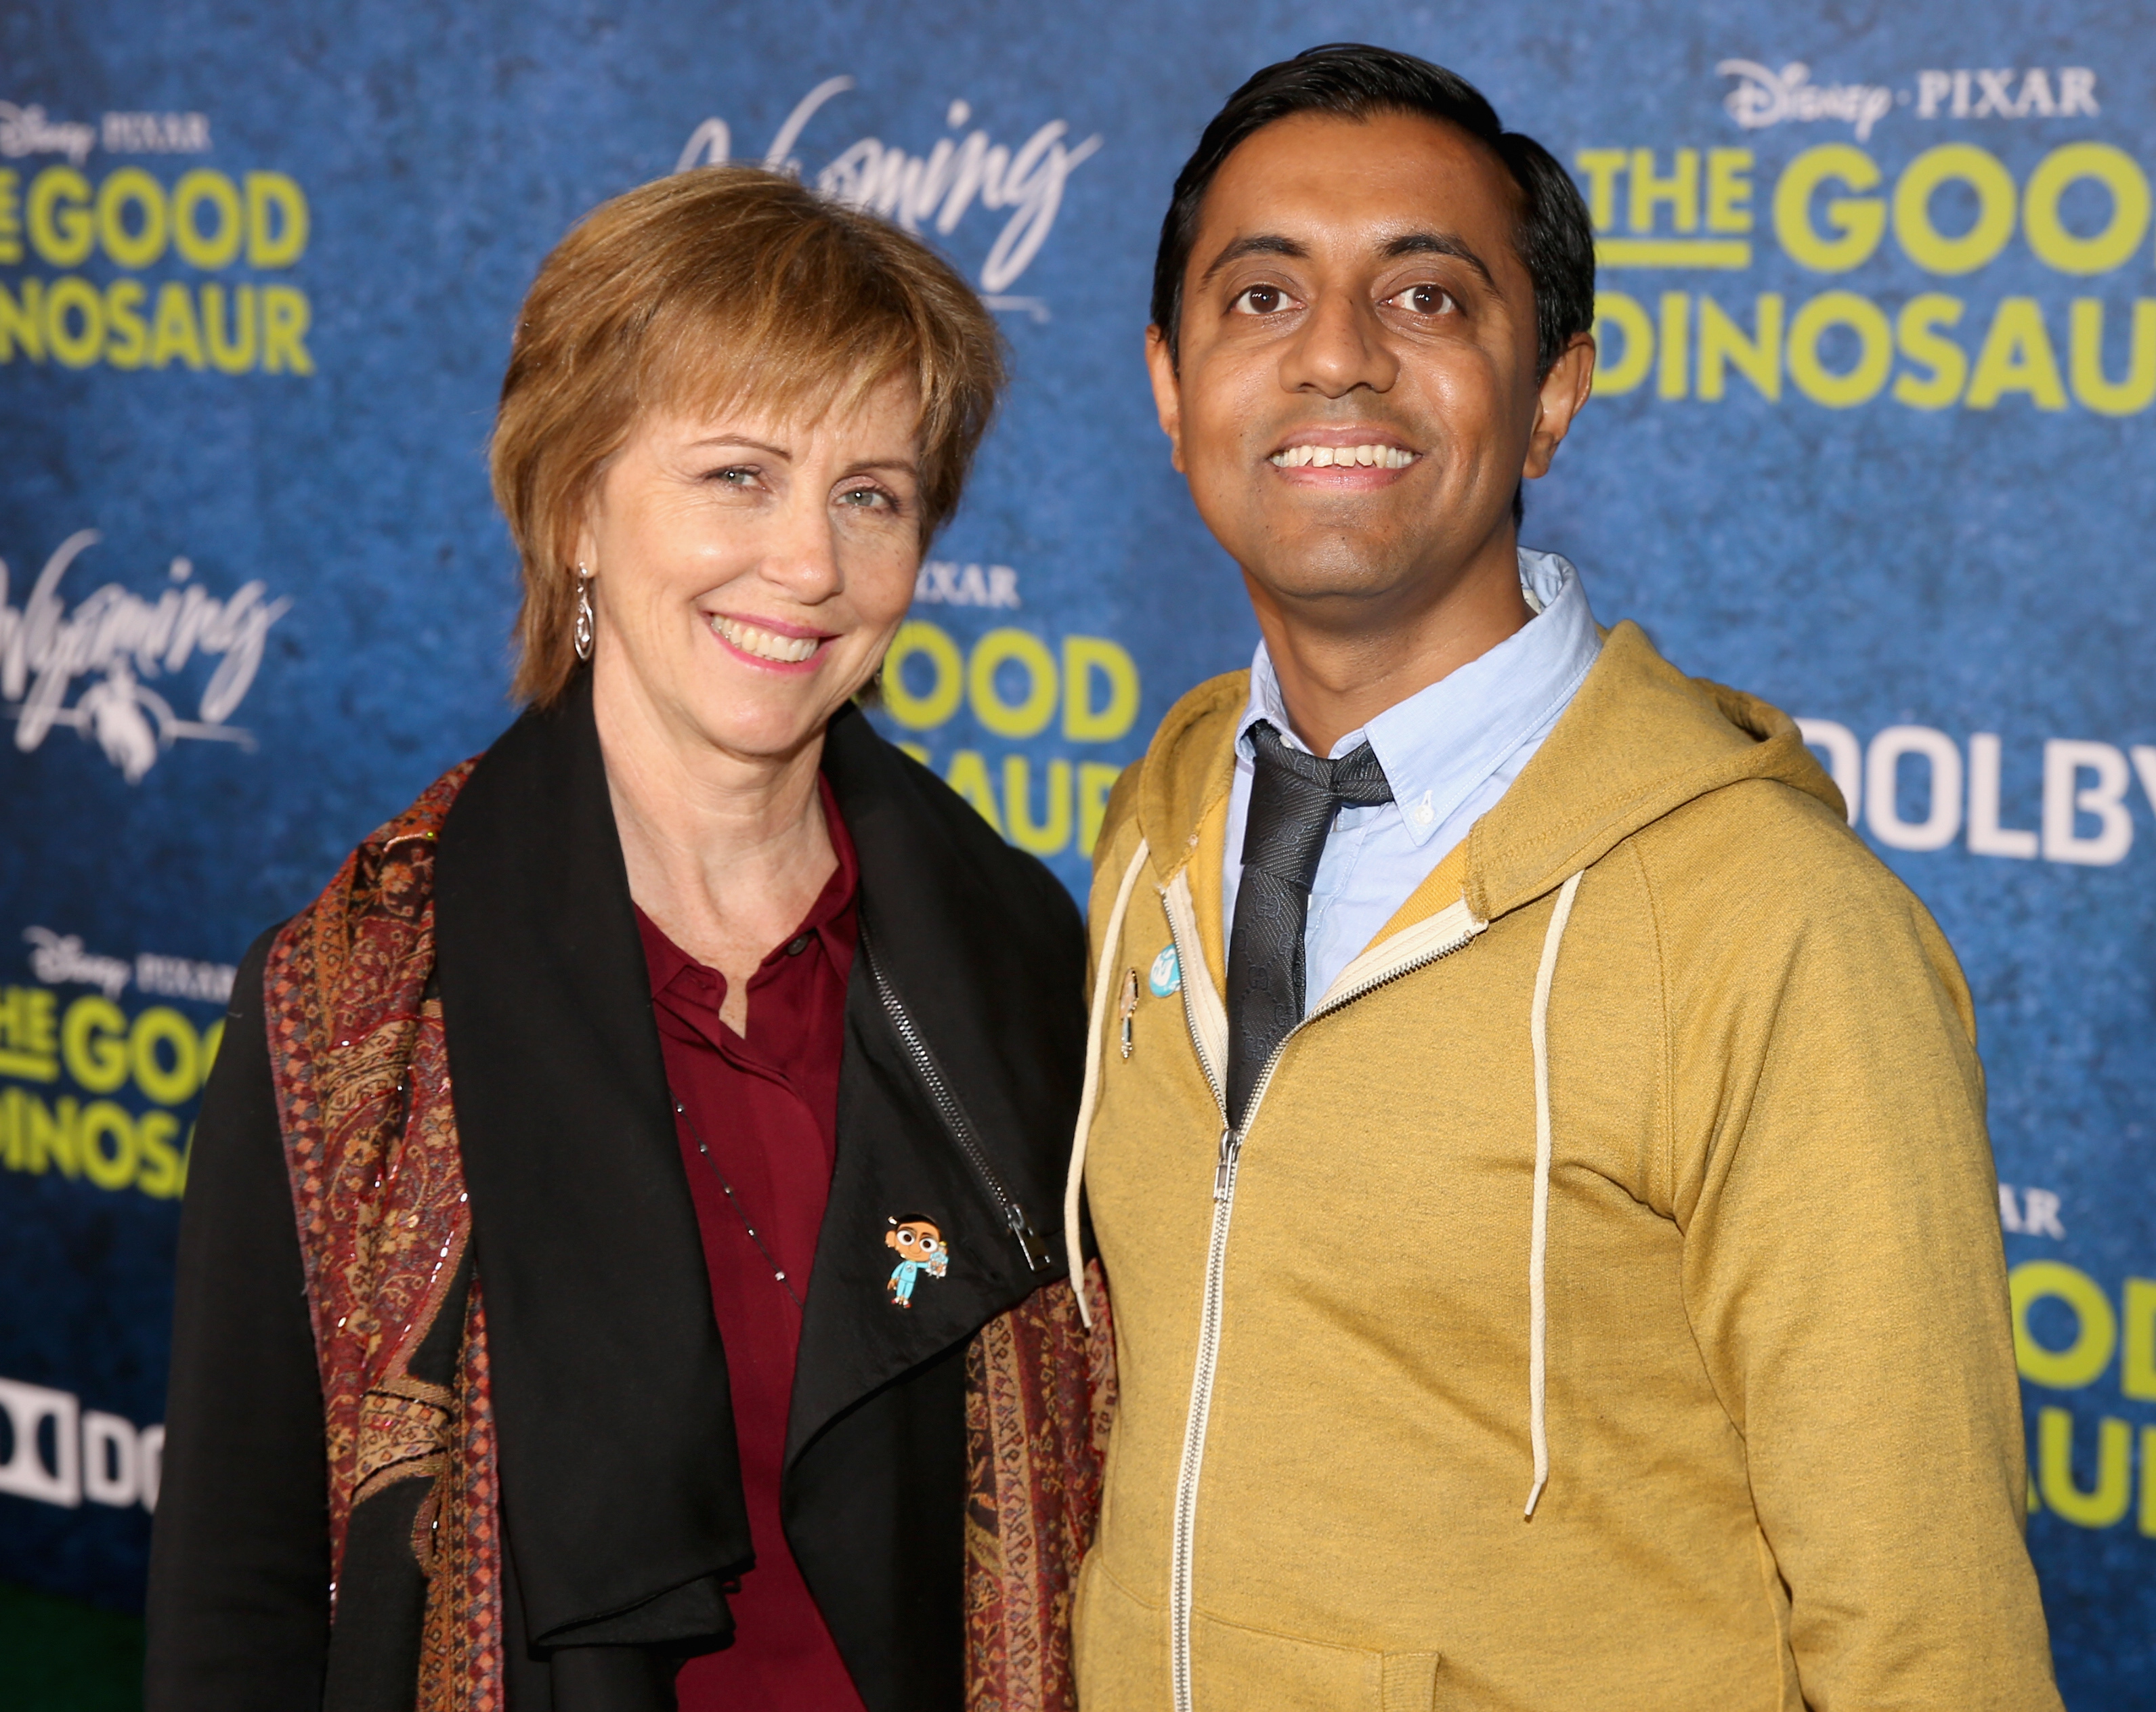 "HOLLYWOOD, CA - NOVEMBER 17: ""Sanjay's Super Team"" Producer Nicole Paradis Grindle (L) and director Sanjay Patel attend the World Premiere Of Disney-Pixar's THE GOOD DINOSAUR at the El Capitan Theatre on November 17, 2015 in Hollywood, California. (Photo by Jesse Grant/Getty Images for Disney) *** Local Caption *** Sanjay Patel; Nicole Paradis Grindle"